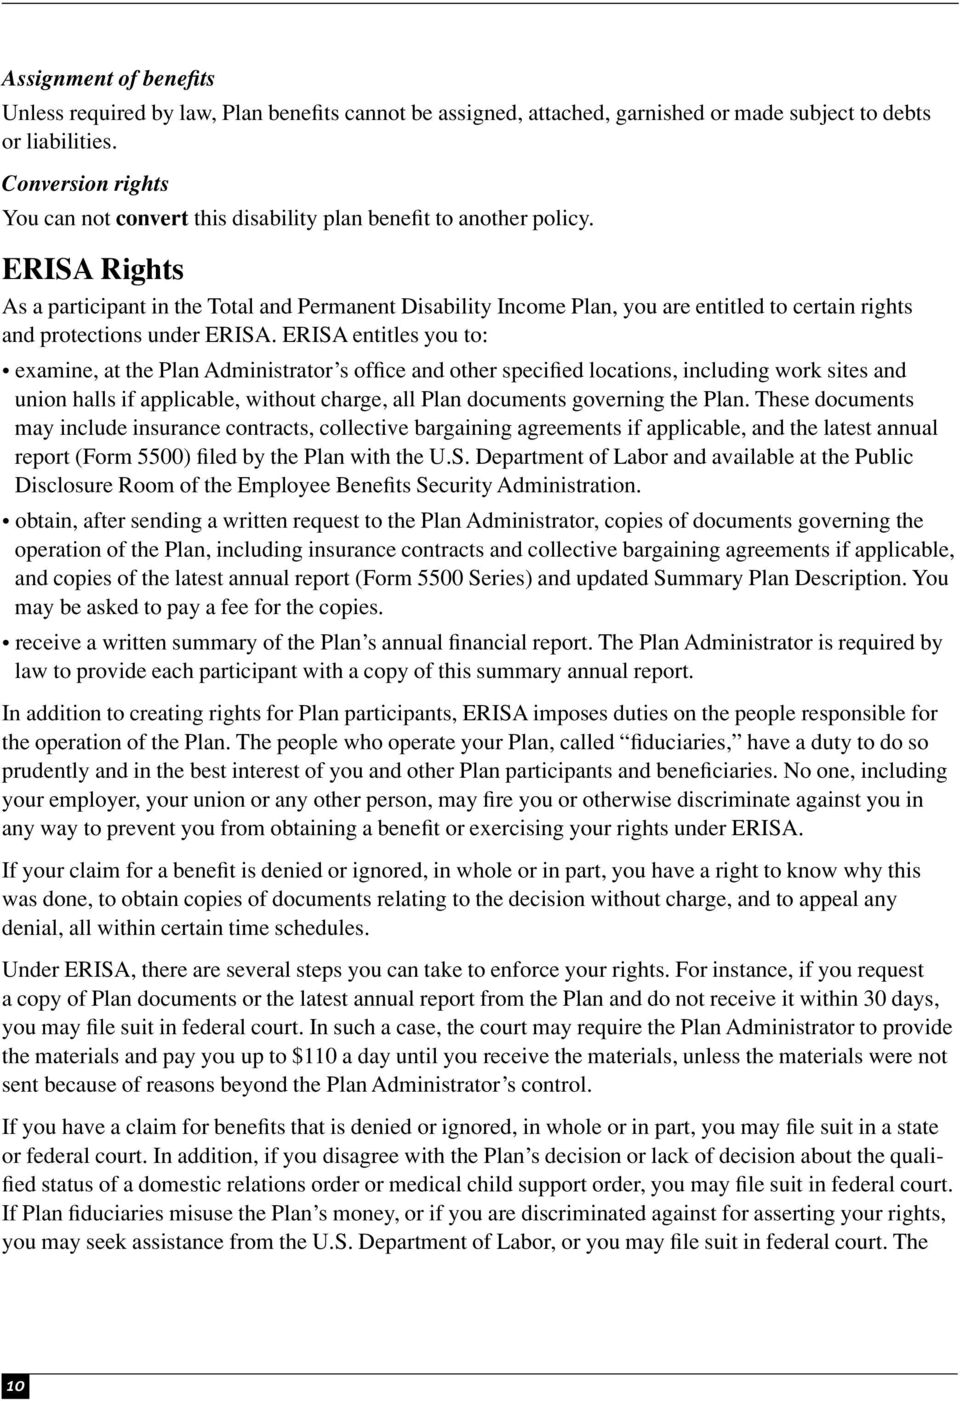 ERISA Rights As a participant in the Total and Permanent Disability Income Plan, you are entitled to certain rights and protections under ERISA.